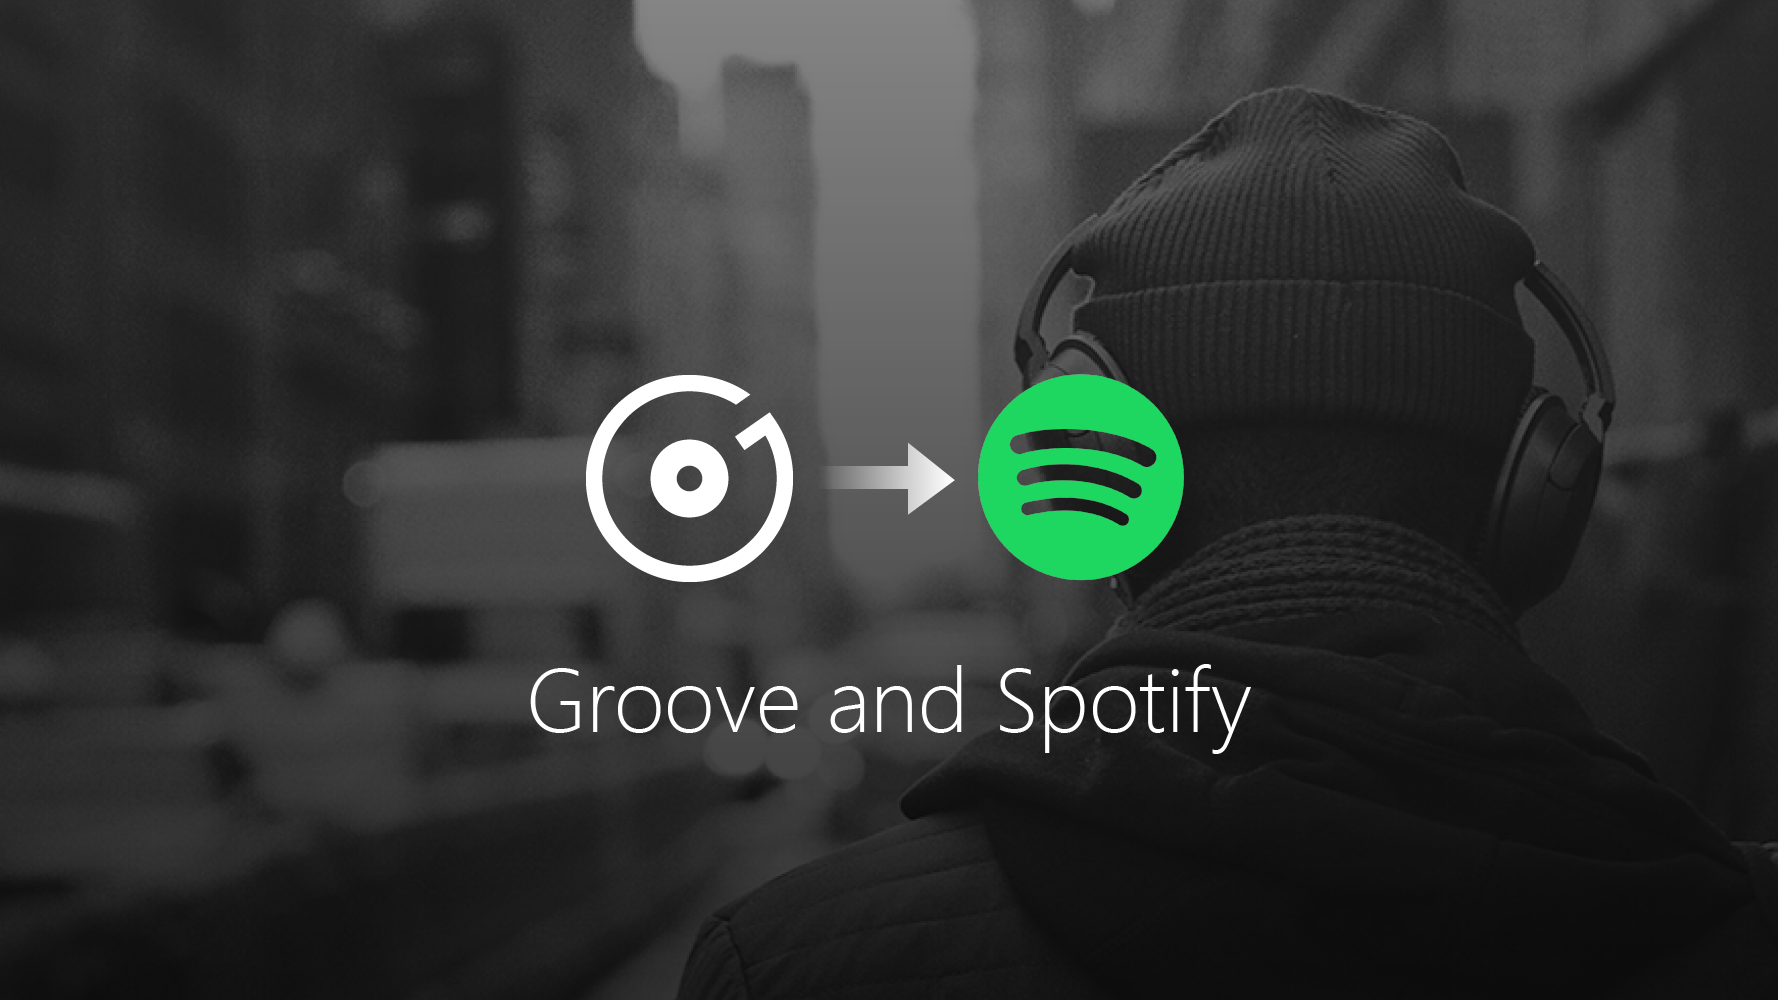 Microsoft Groove Is Going Away, So Switch To Spotify